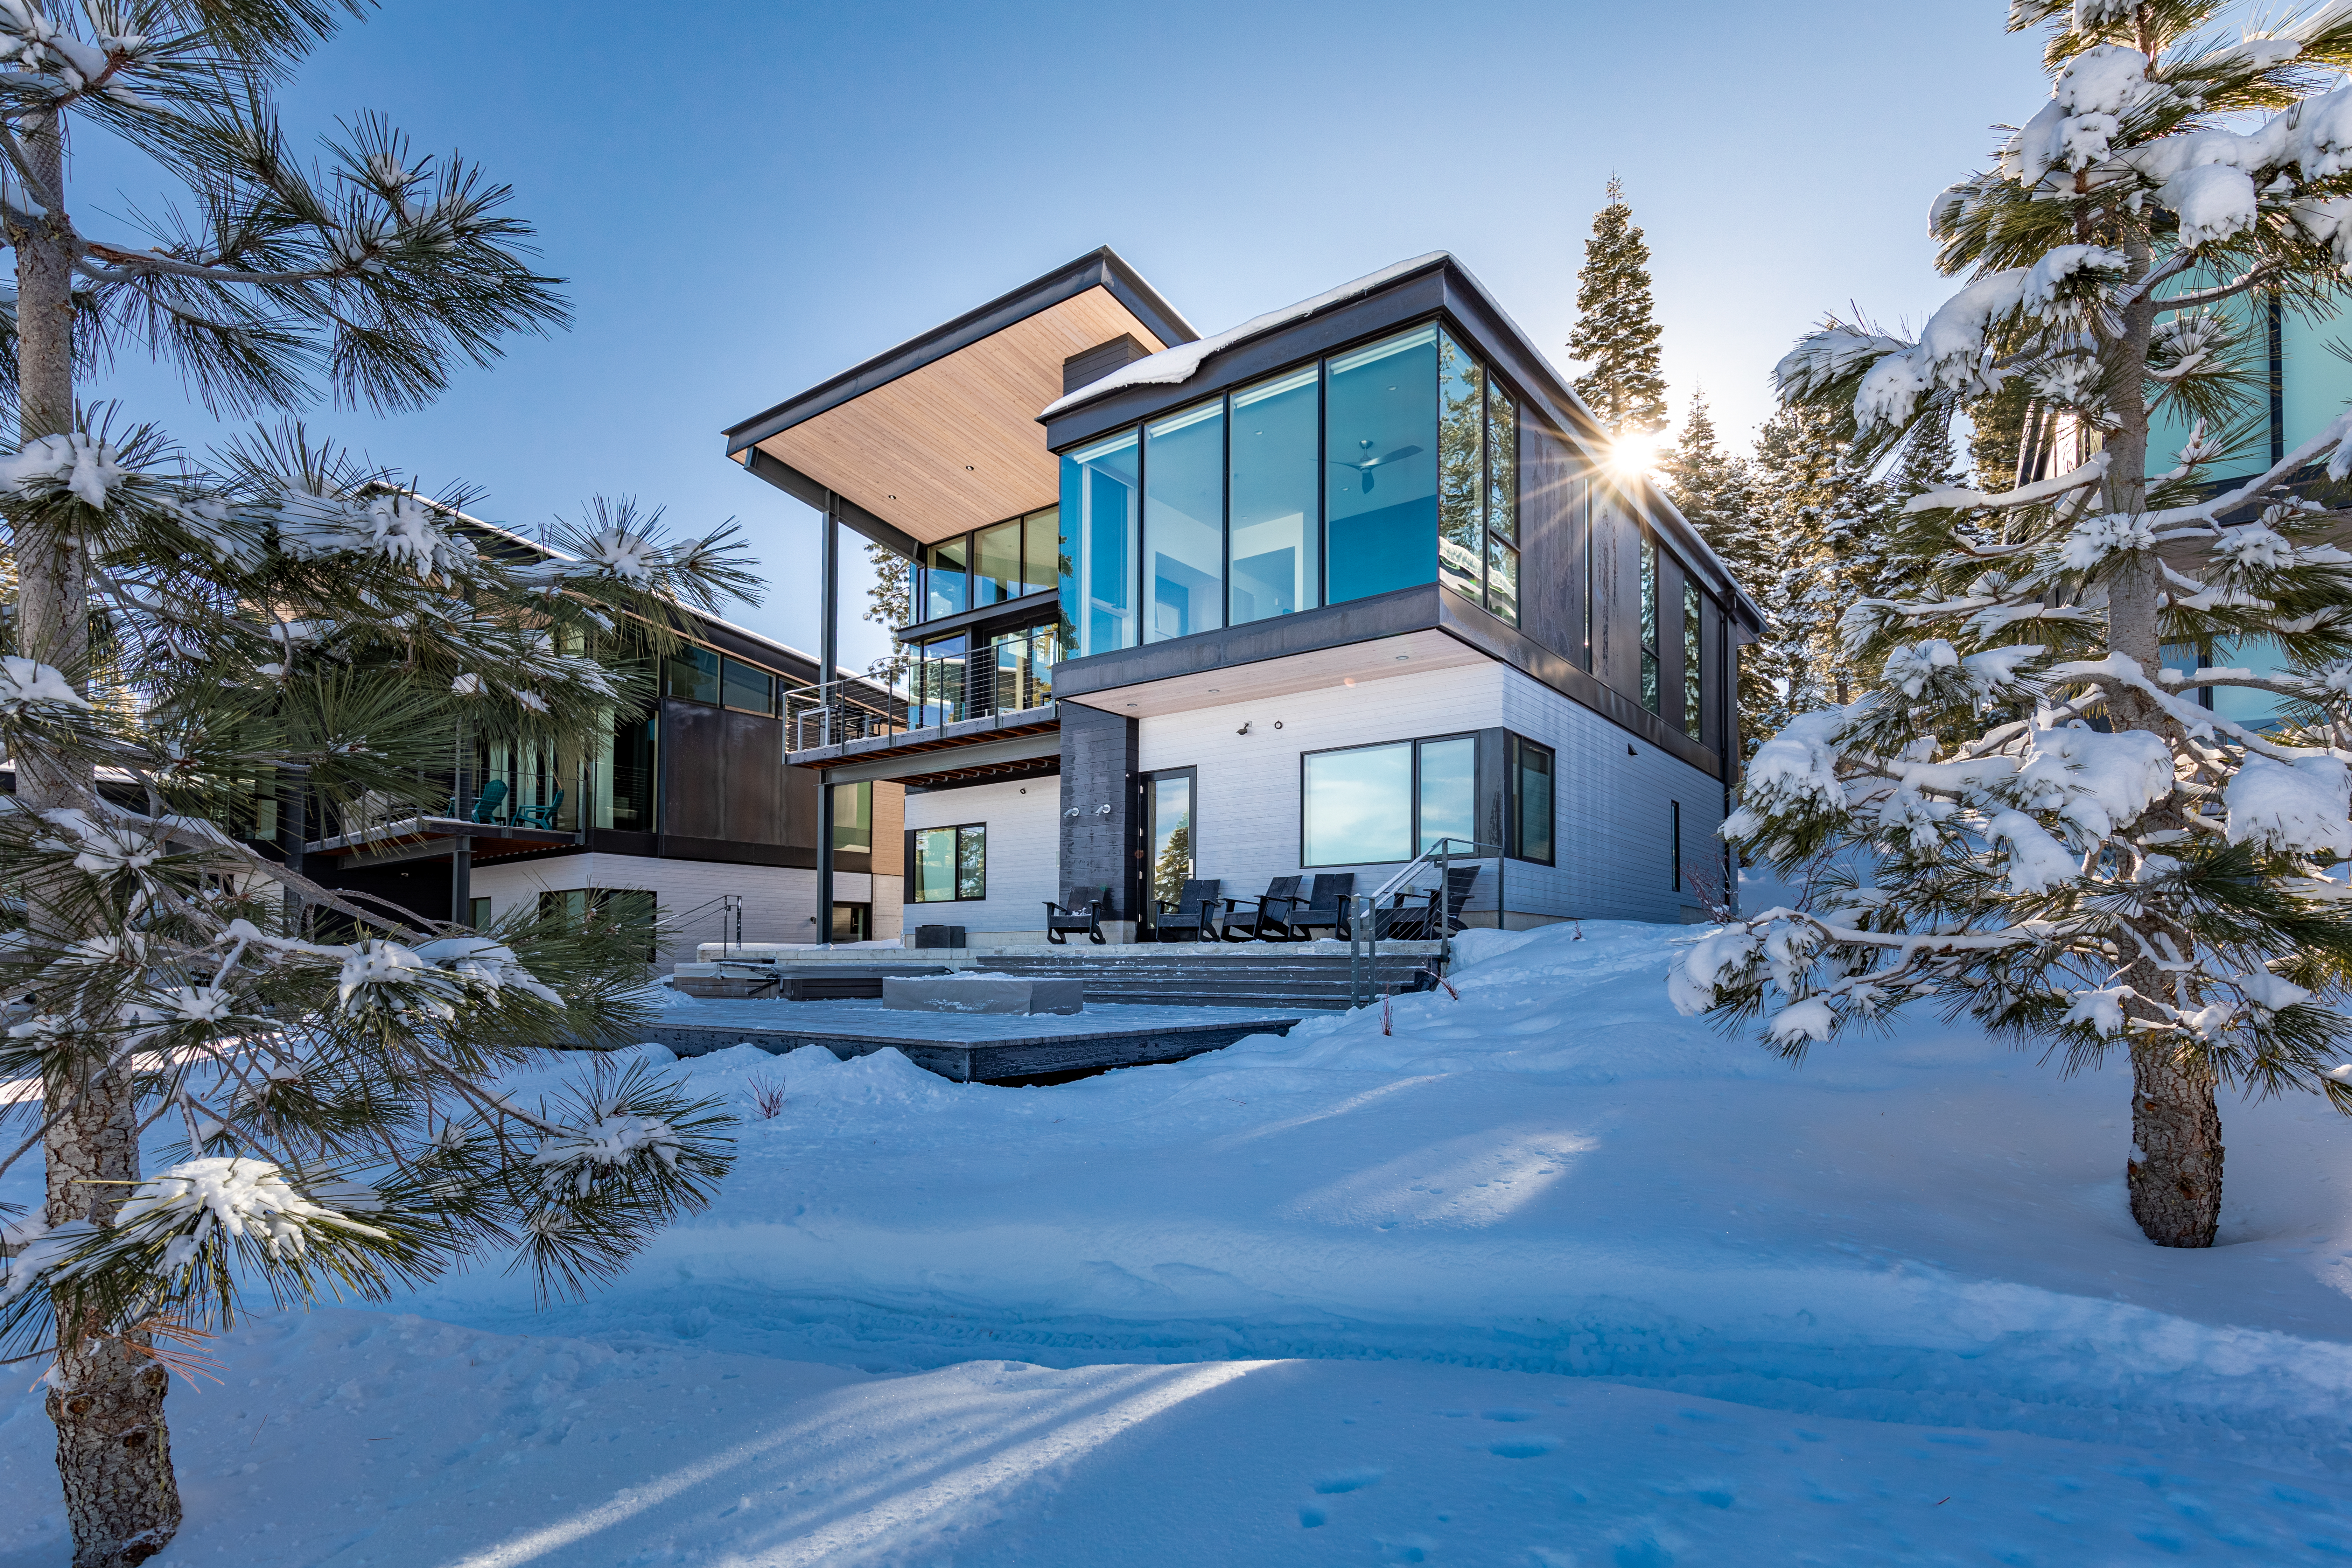 exterior of resort home at 14223 Mountainside Place Truckee CA